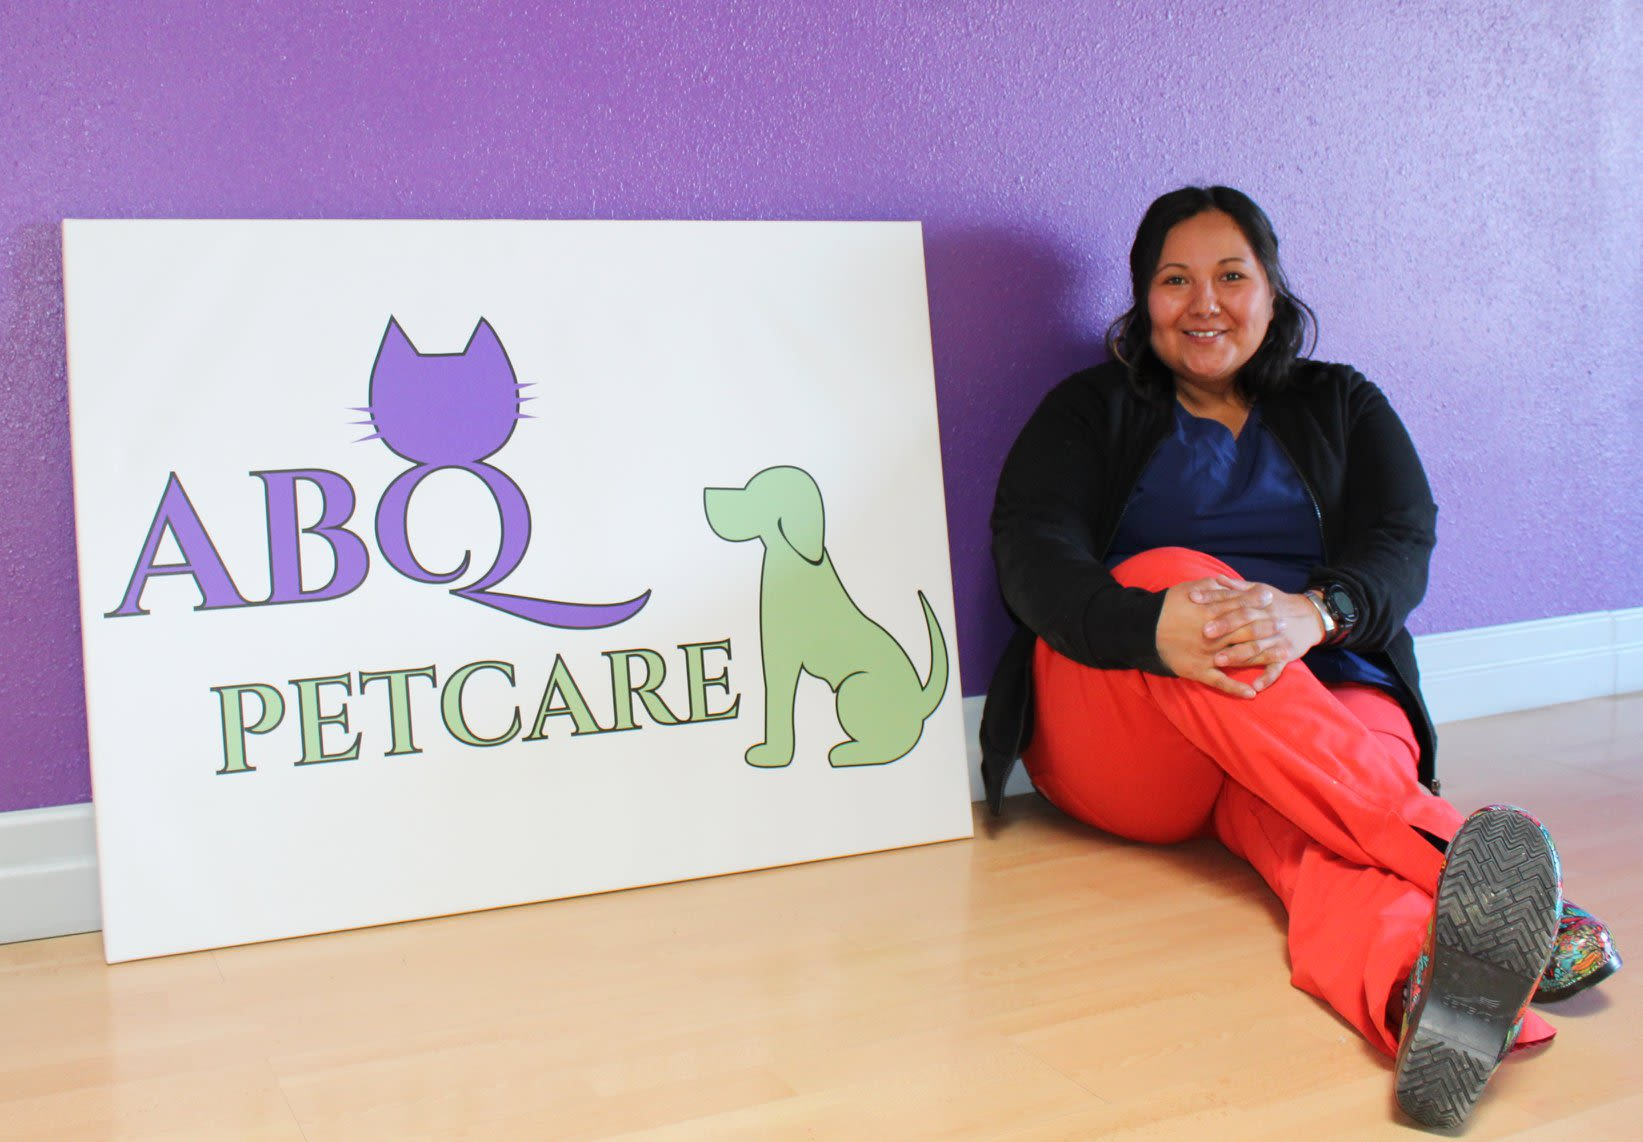 Ivy Lead Veterinary Technician at ABQ Petcare Hospital